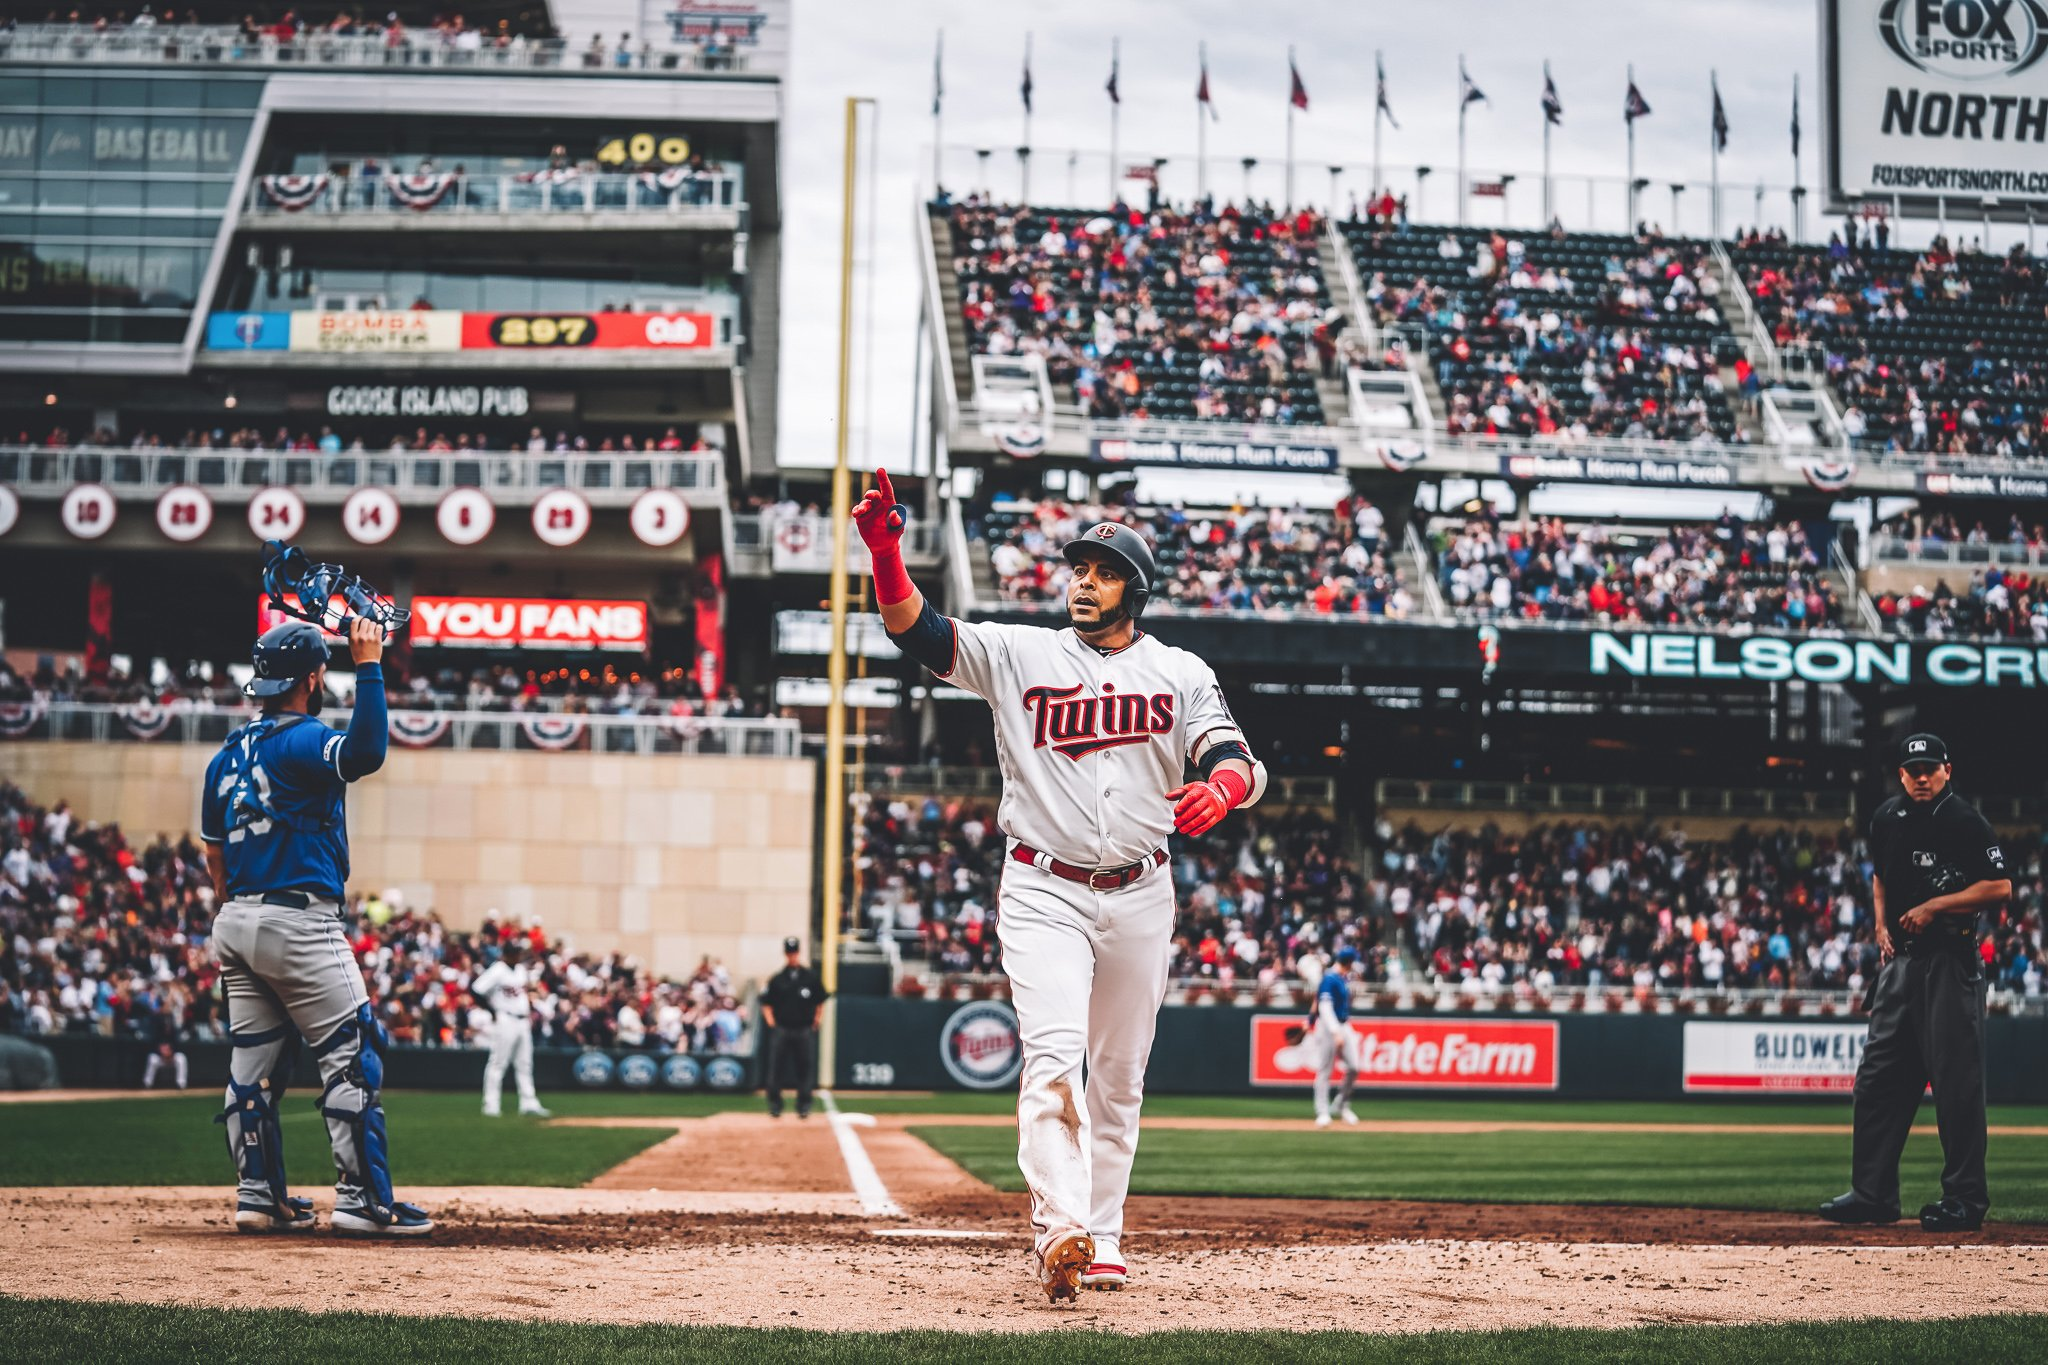 Cruz Minnesota Twins photo 2 via Twitter